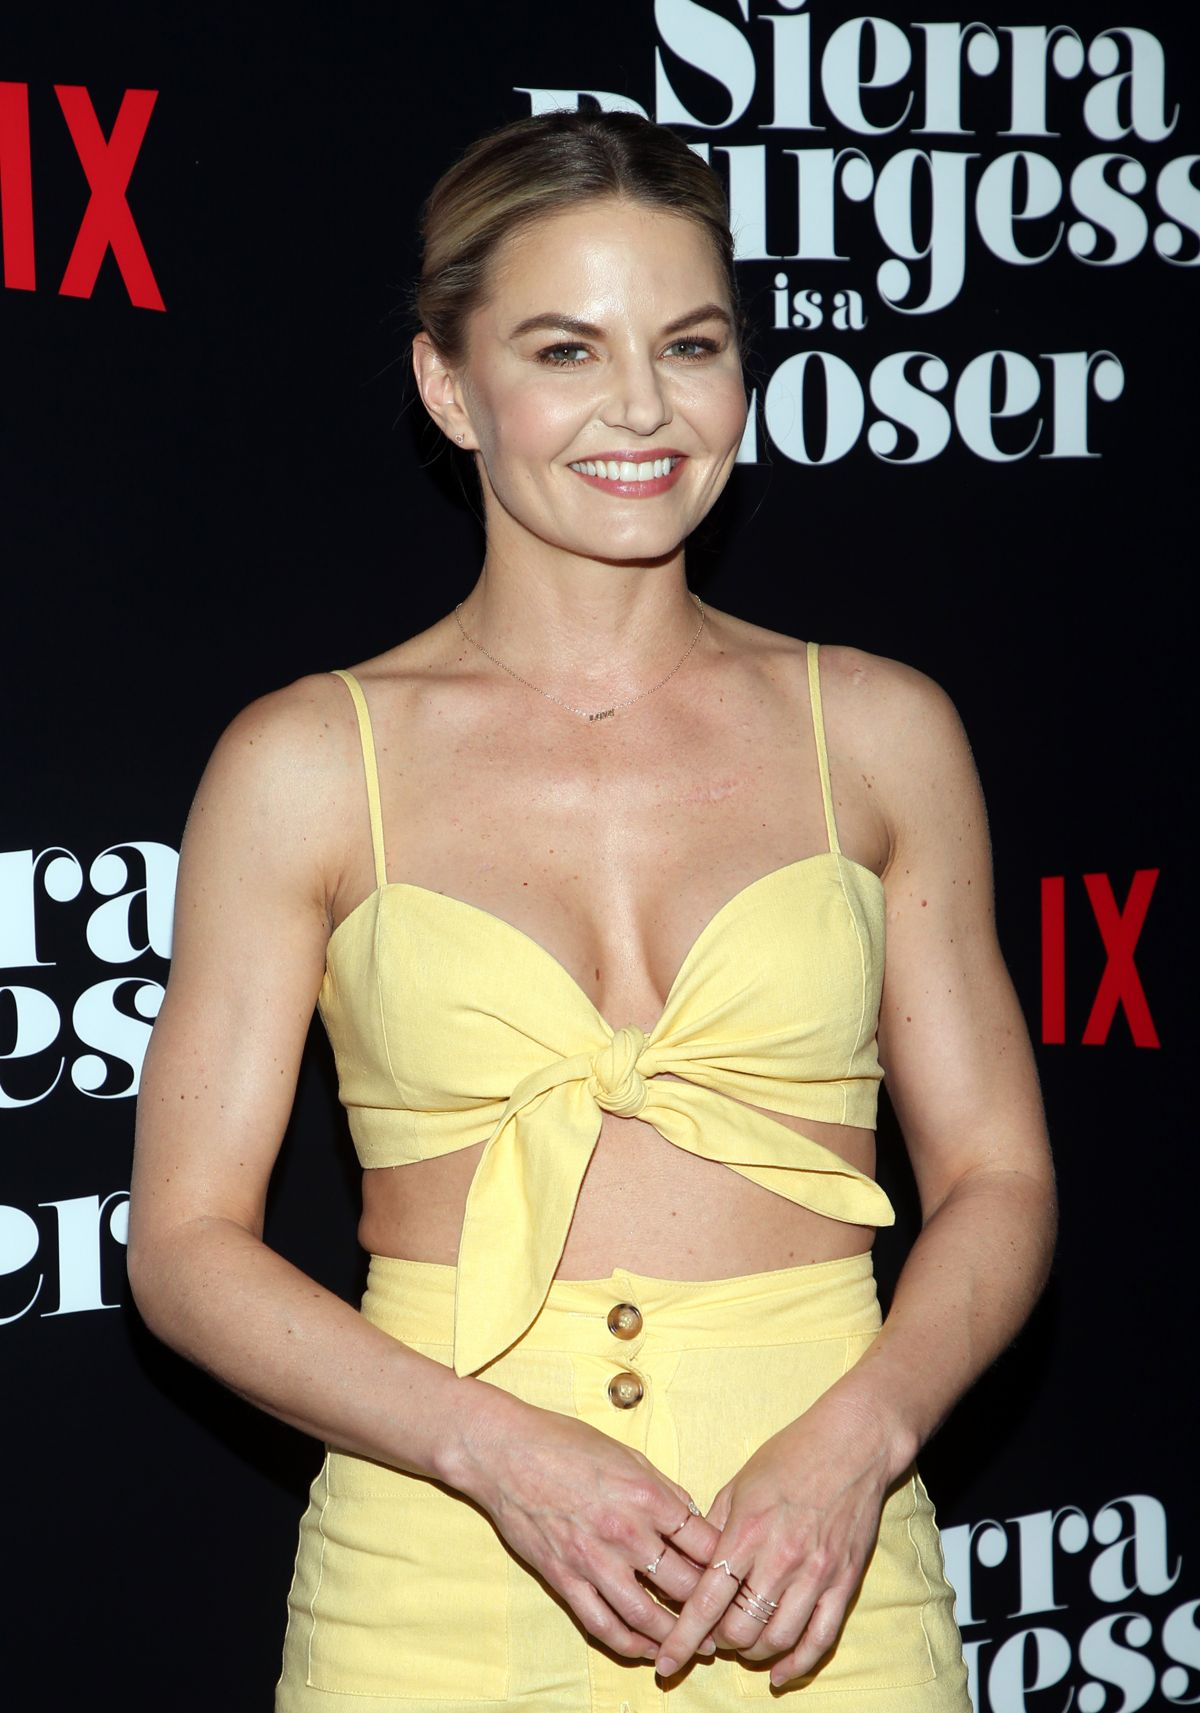 456c85b12 JENNIFER MORRISON at Sierra Burgess is a Loser Premiere in Hollywood 08 30  2018